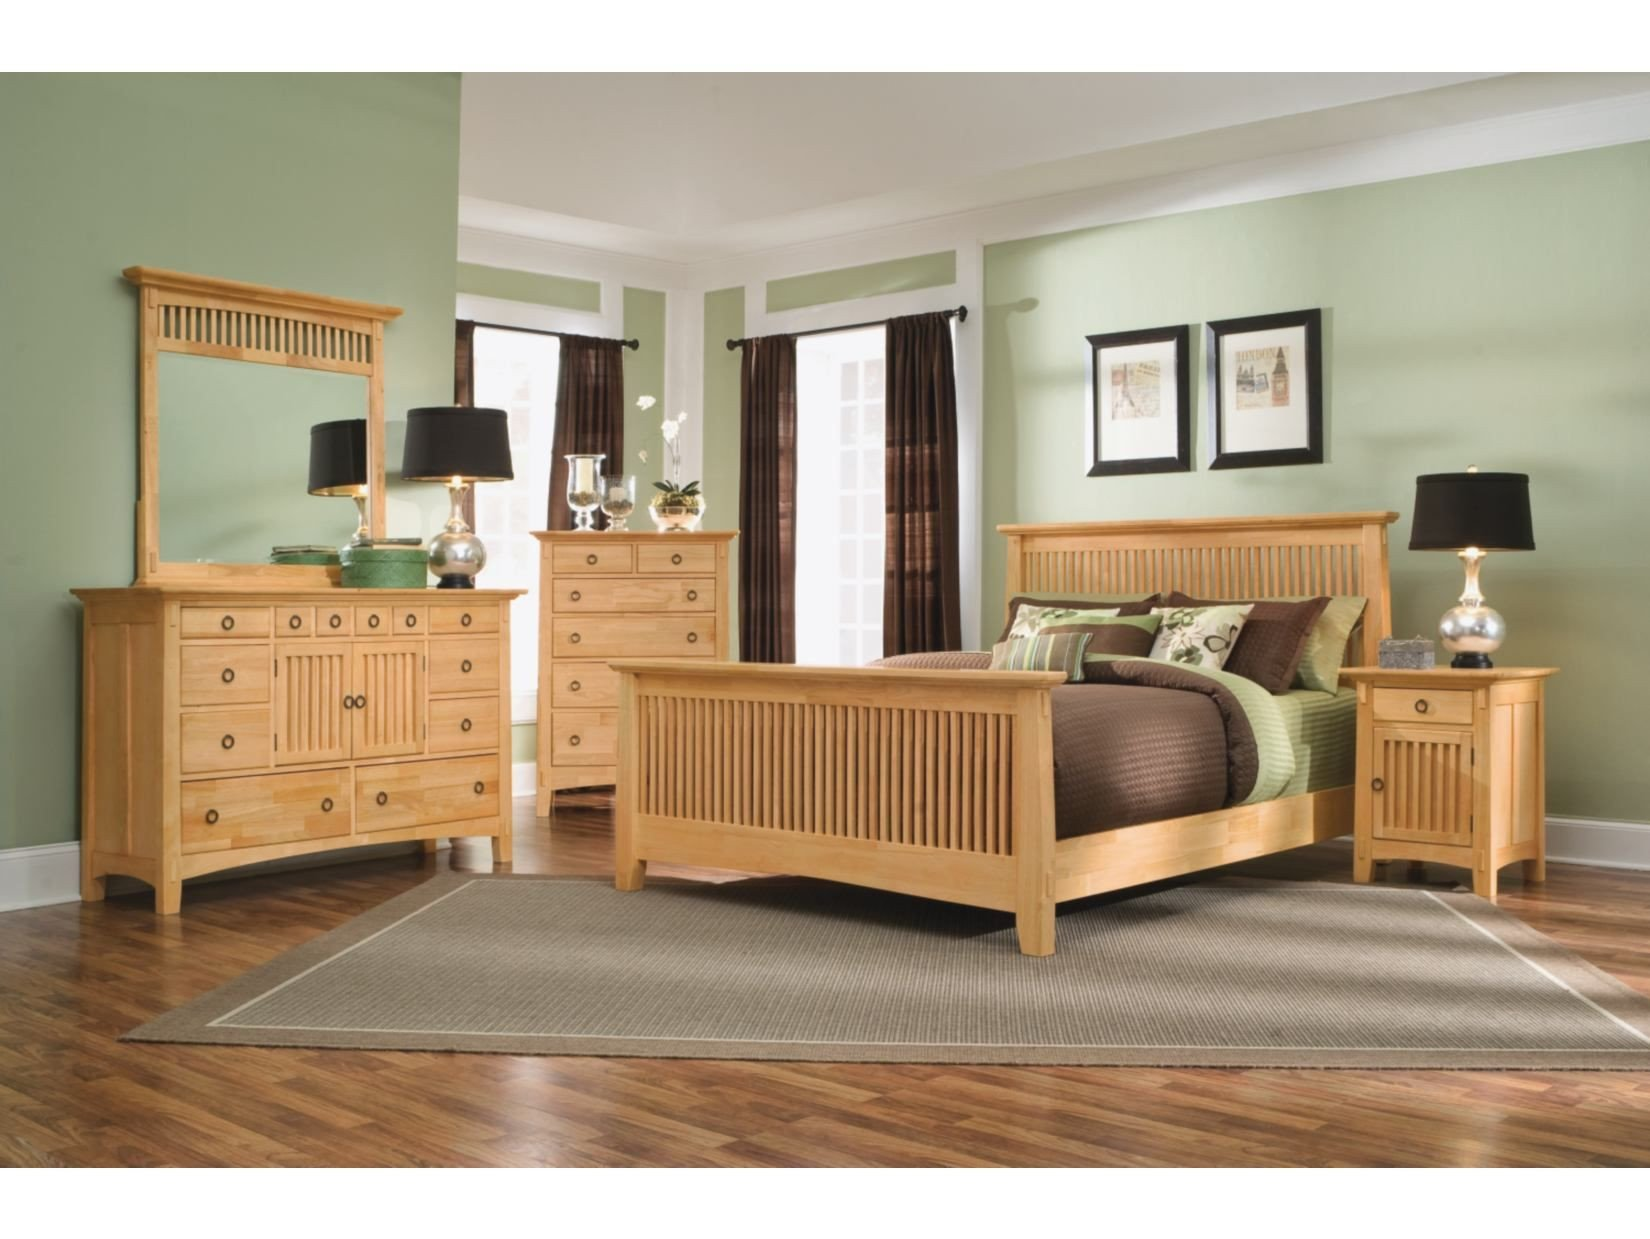 5 Piece Bedroom Set Lovely Arts & Crafts 5 Pc Bedroom Package American Signature